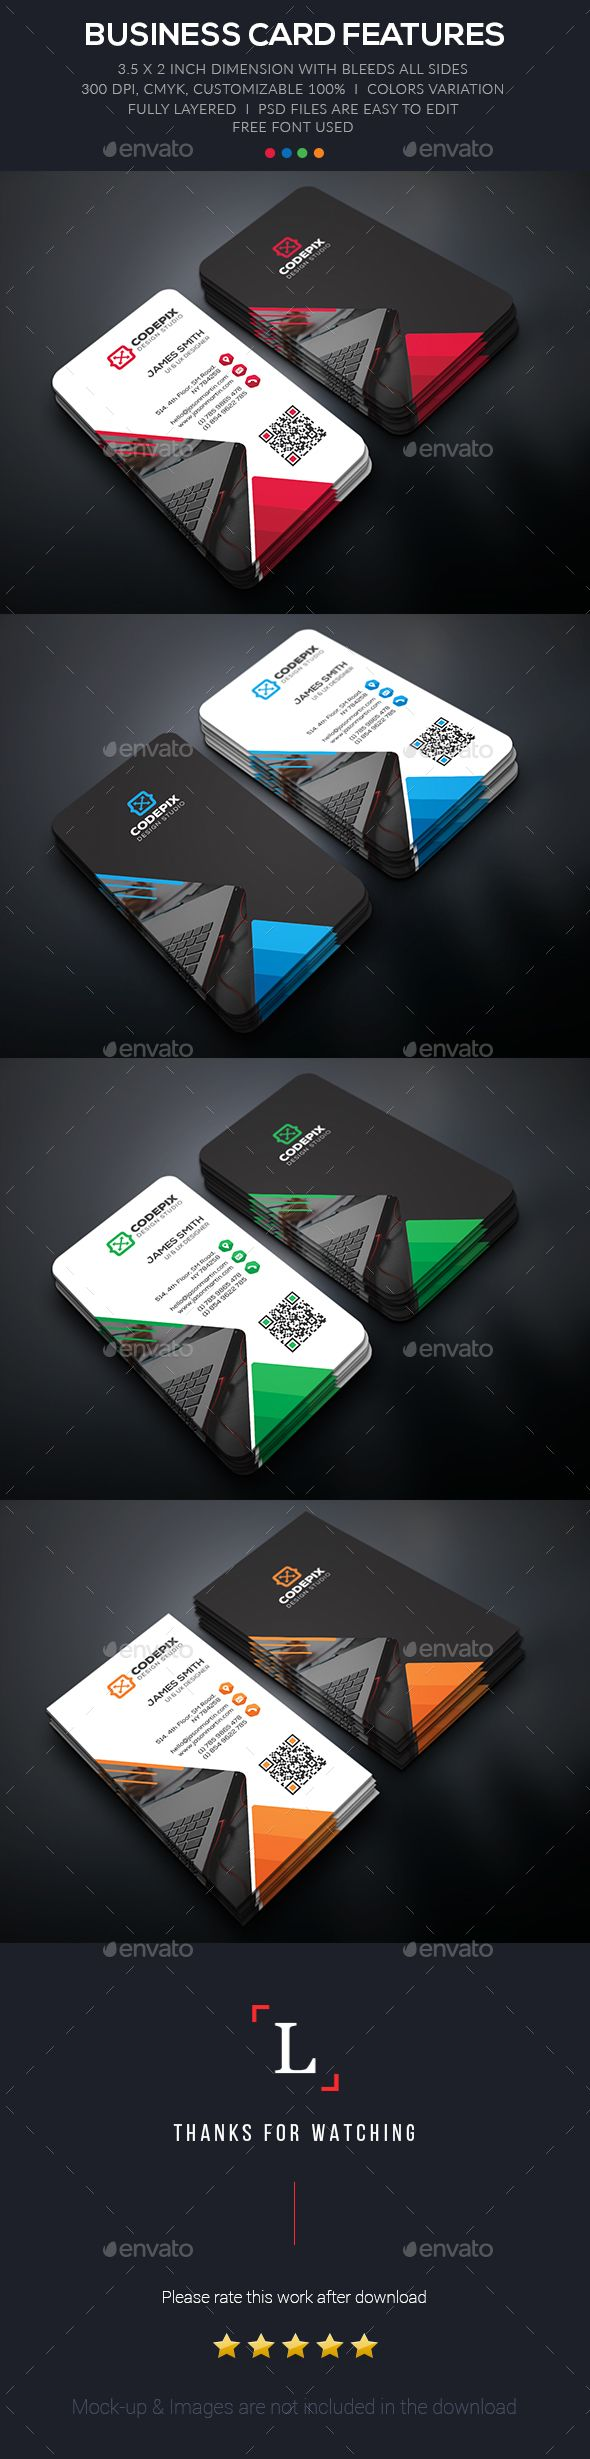 Corporate Business Card Template PSD. Download here: http://graphicriver.net/item/corporate-business-card/15943941?ref=ksioks